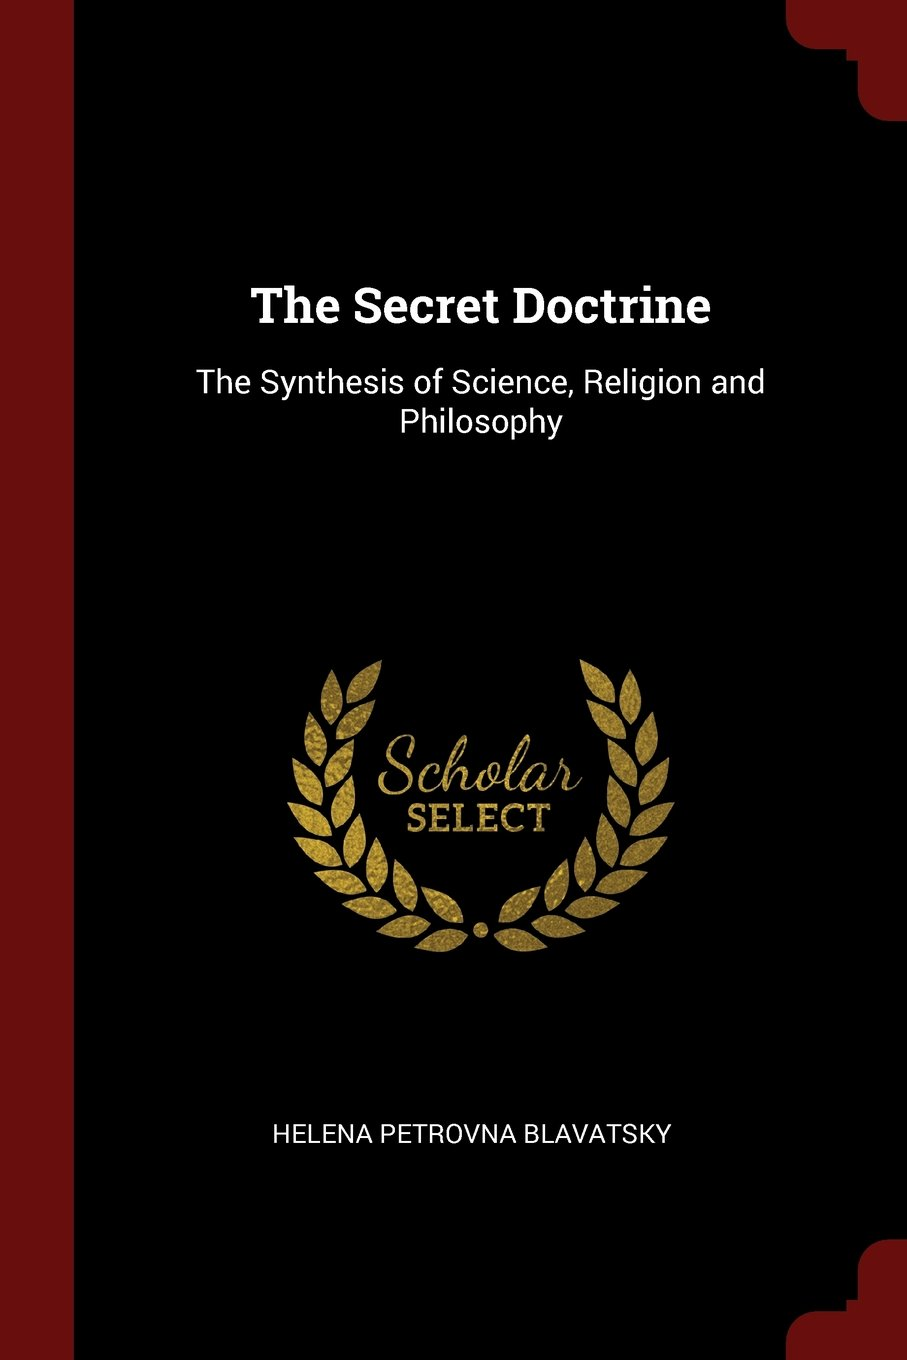 The Secret Doctrine: The Synthesis of Science, Religion and Philosophy PDF